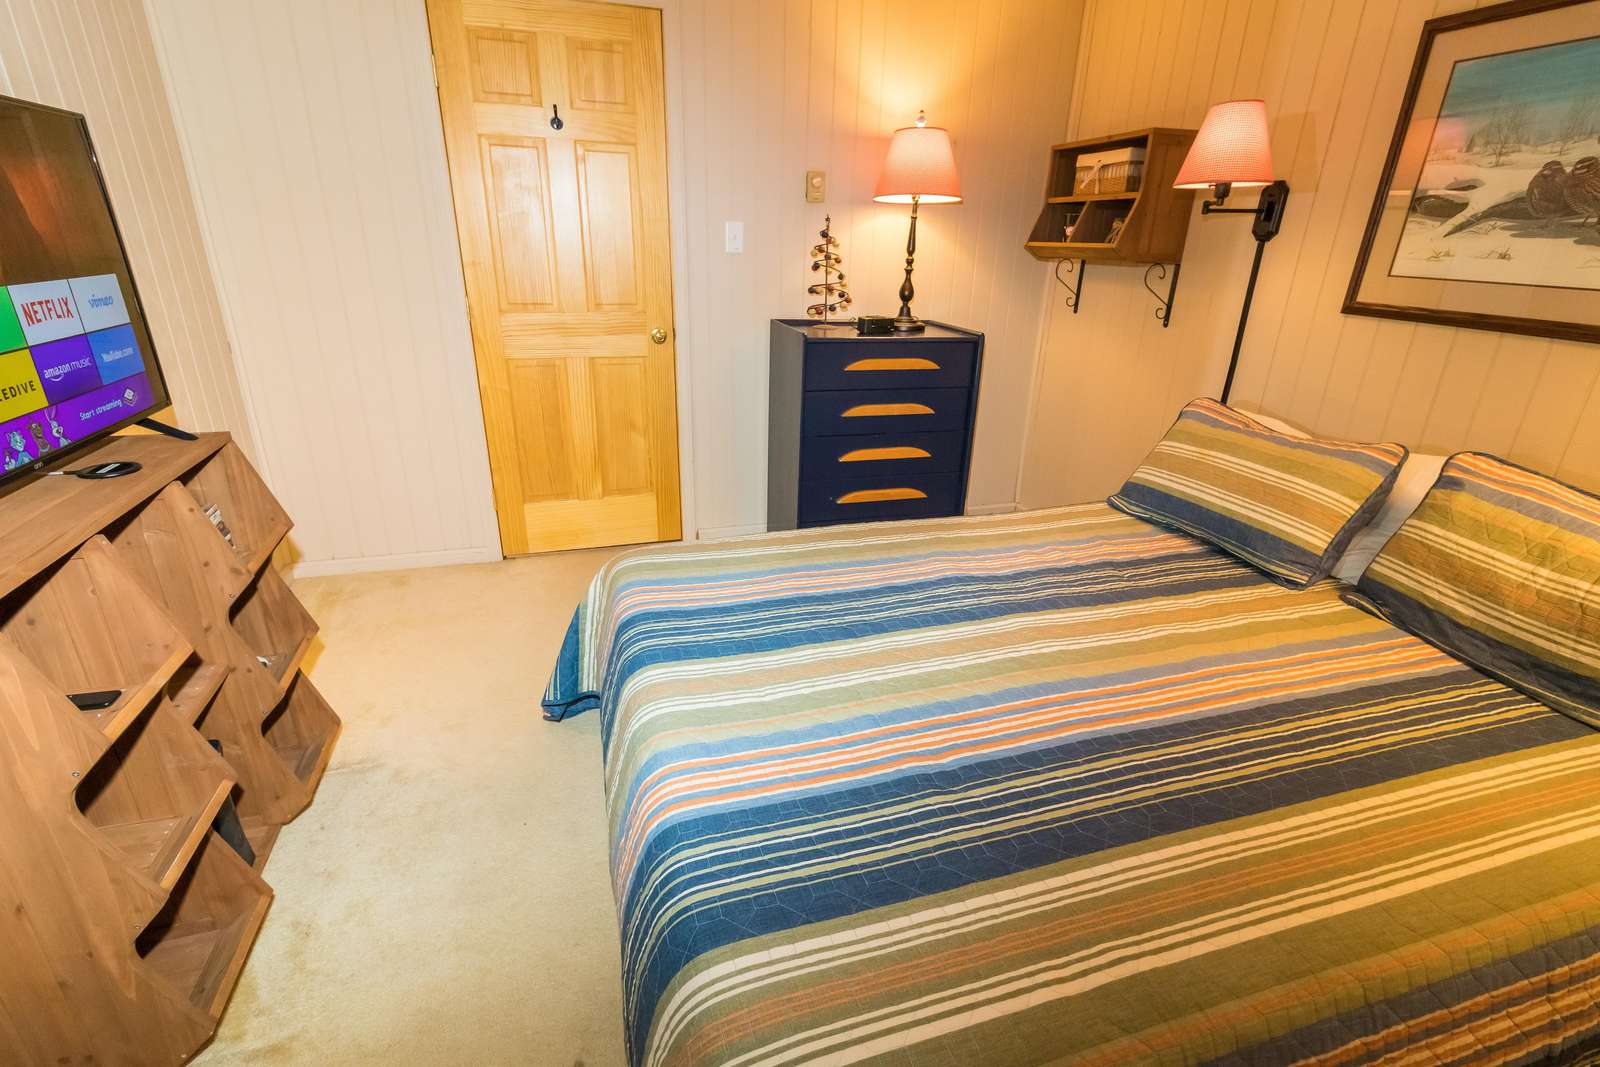 Full-sized bed in second bedroom; chest of drawers and closet for storage.